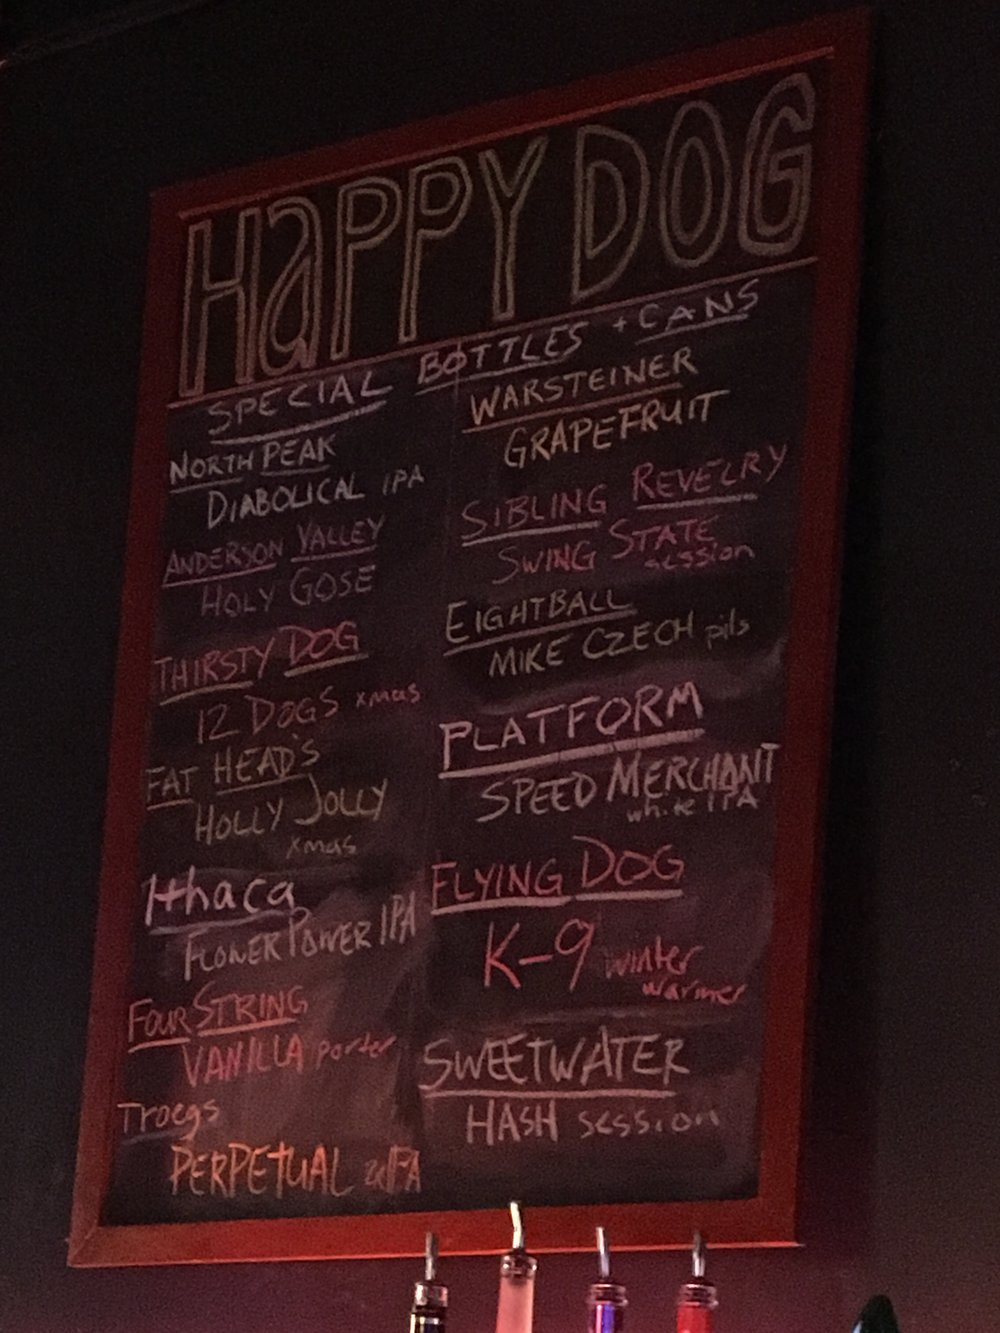 These are just a few of the beers available at Happy Dog